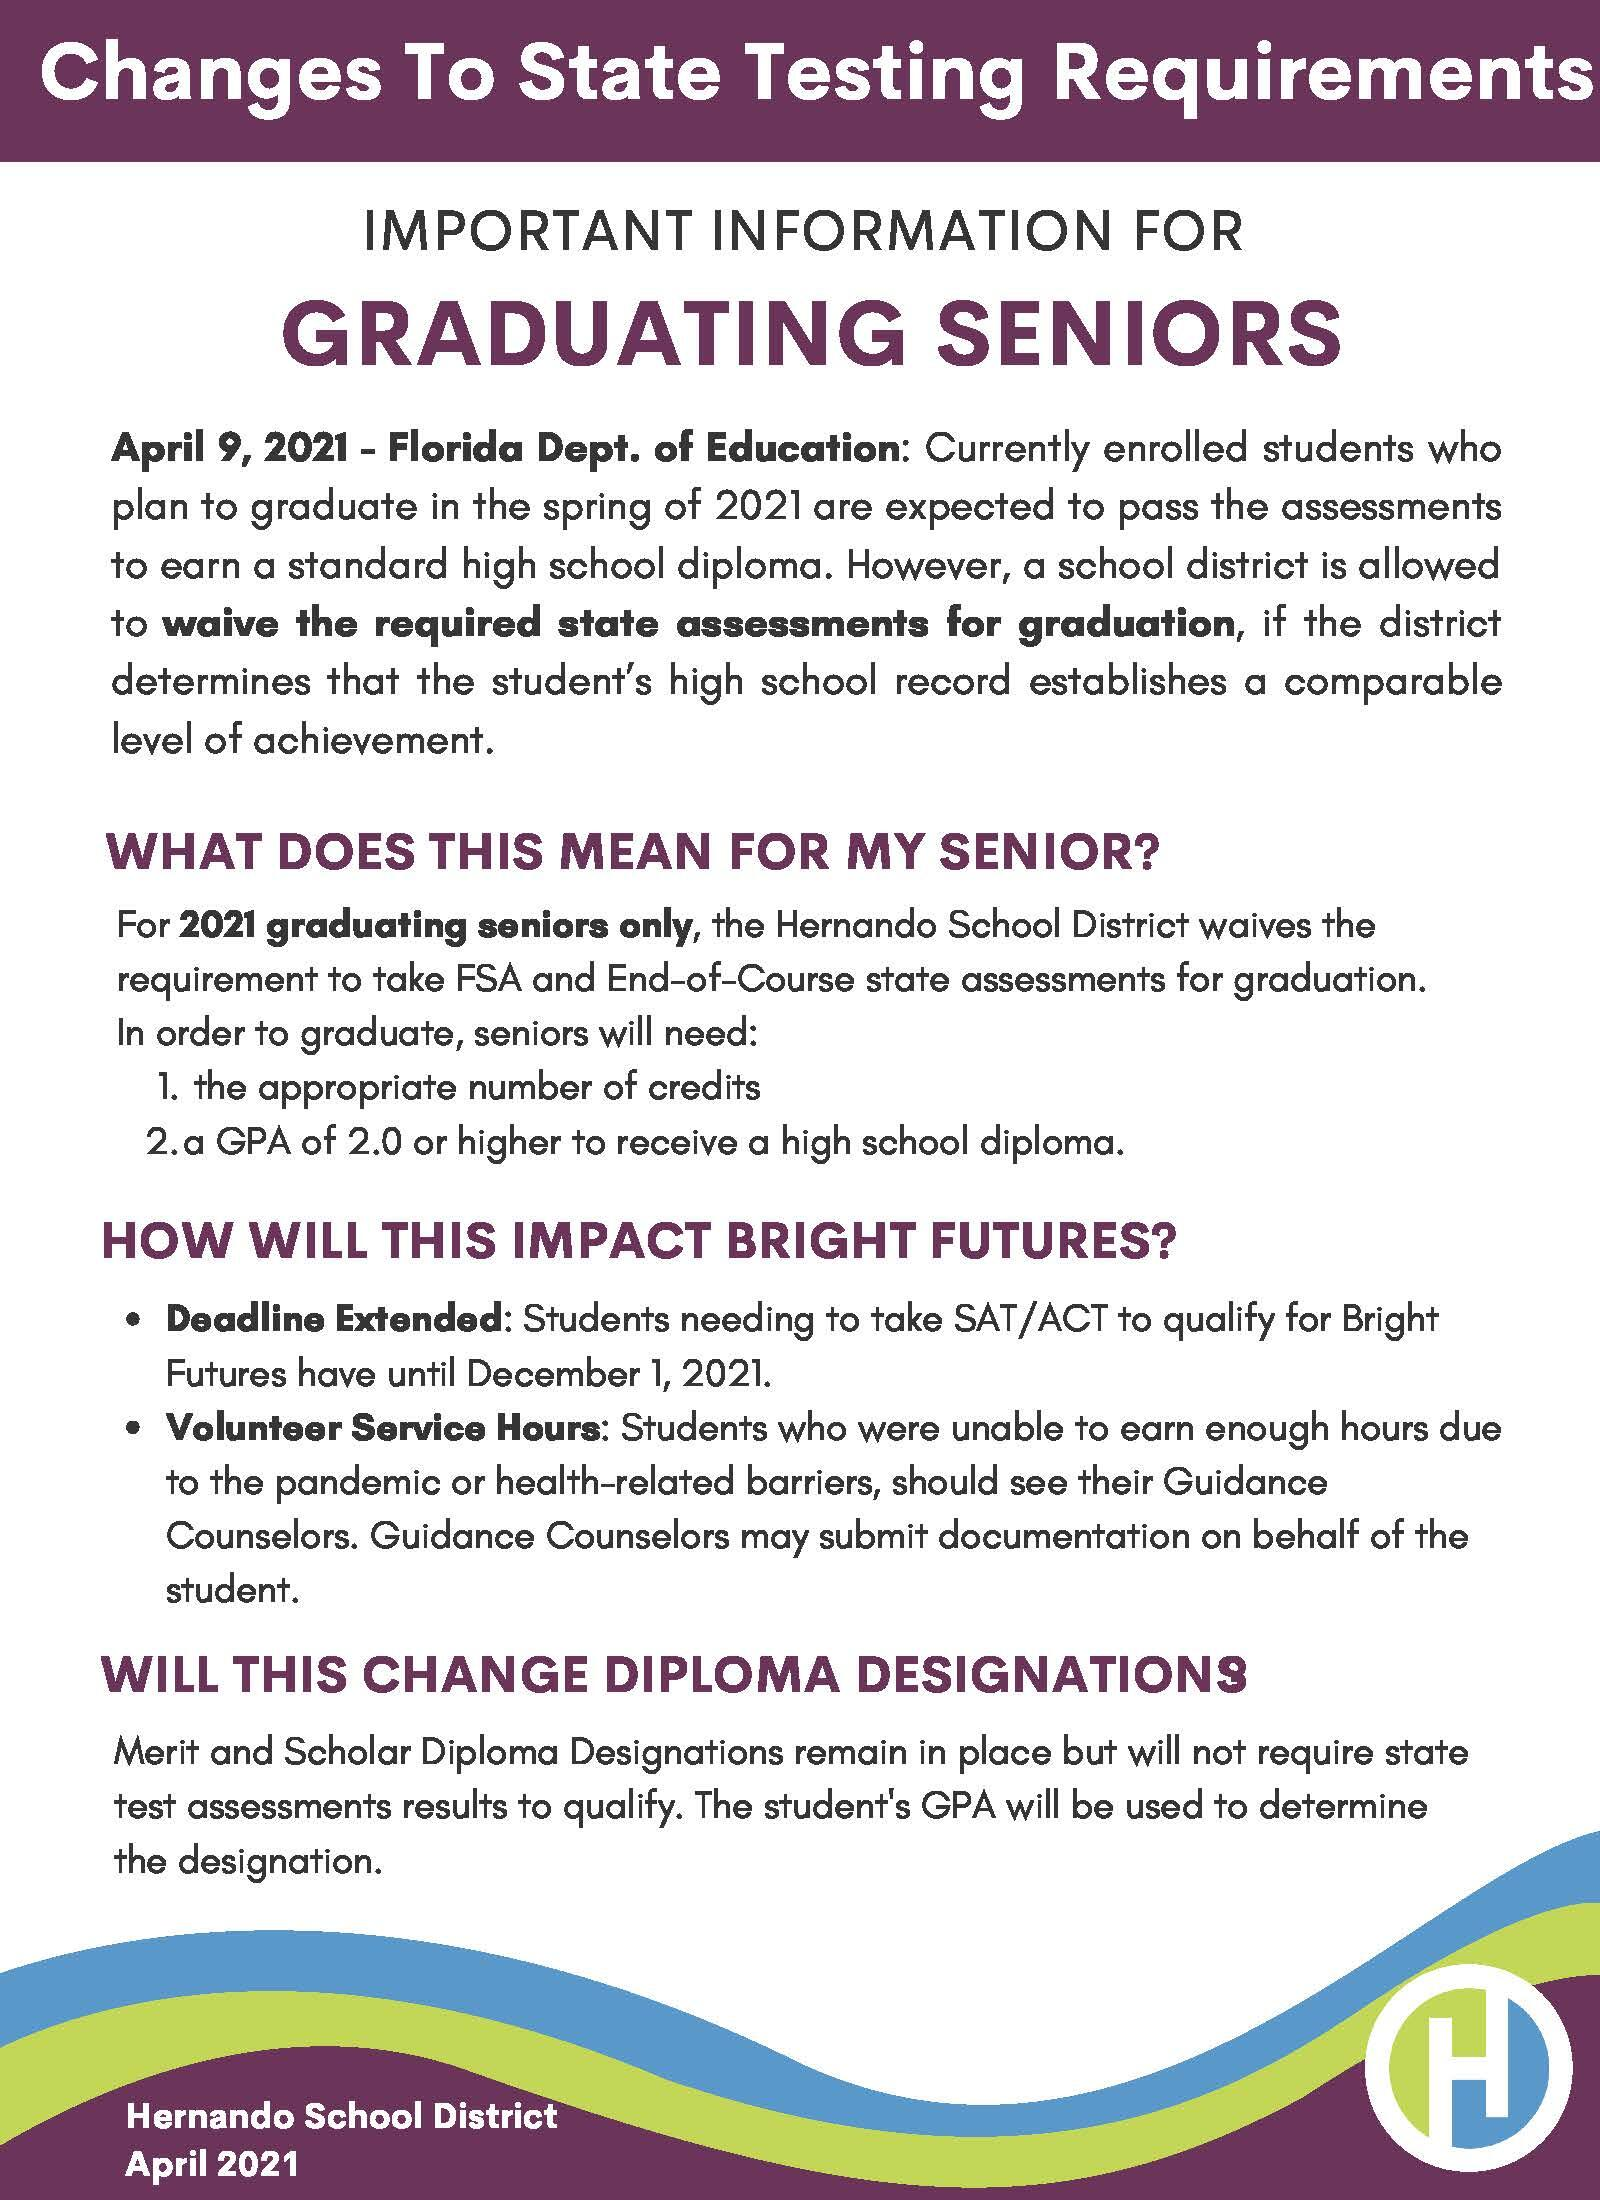 Guide to Understanding Changes to State Testing for Seniors